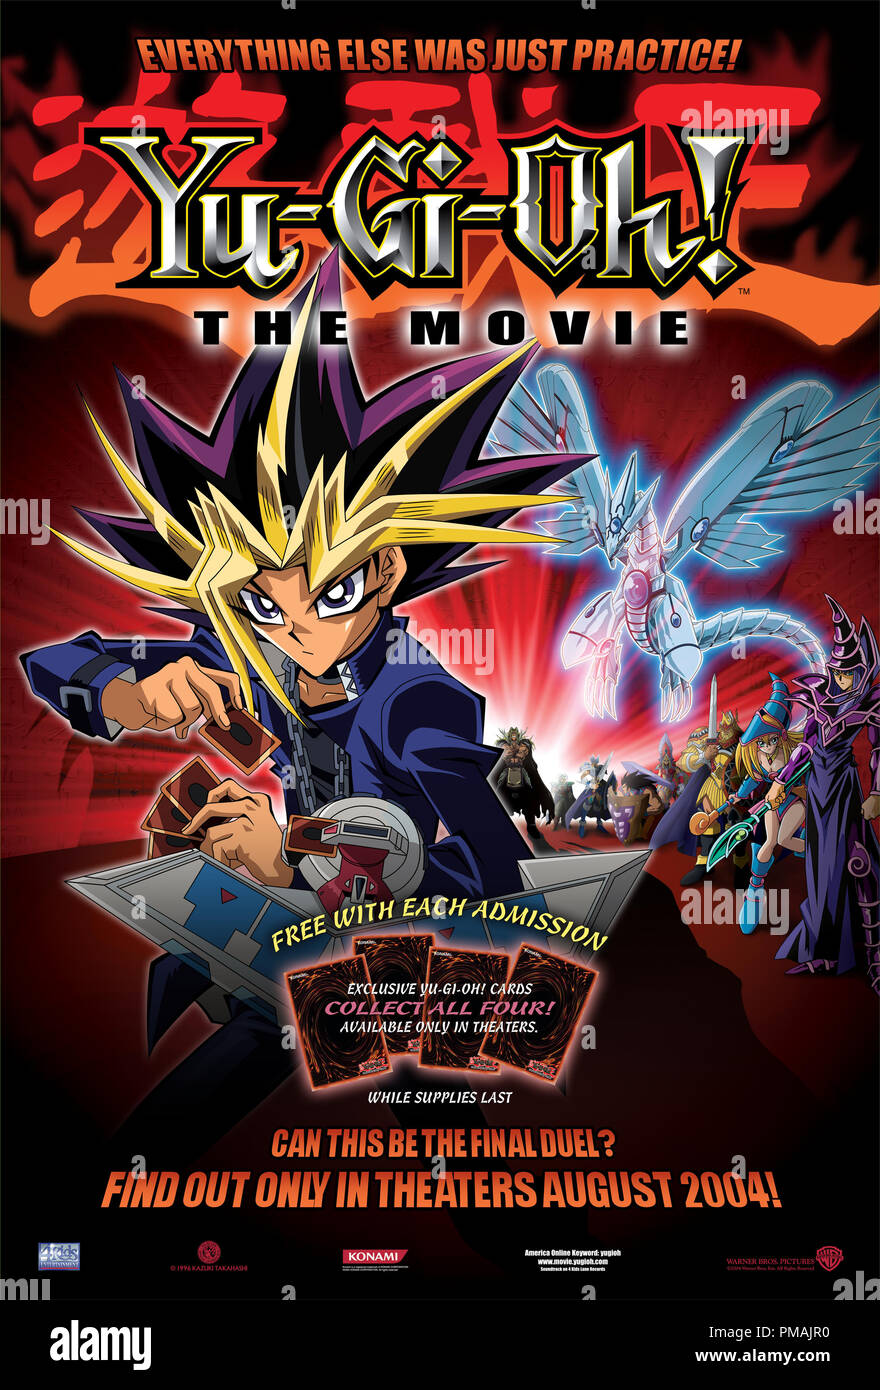 'Yu-Gi-Oh The Movie' (2004) Poster - Stock Image